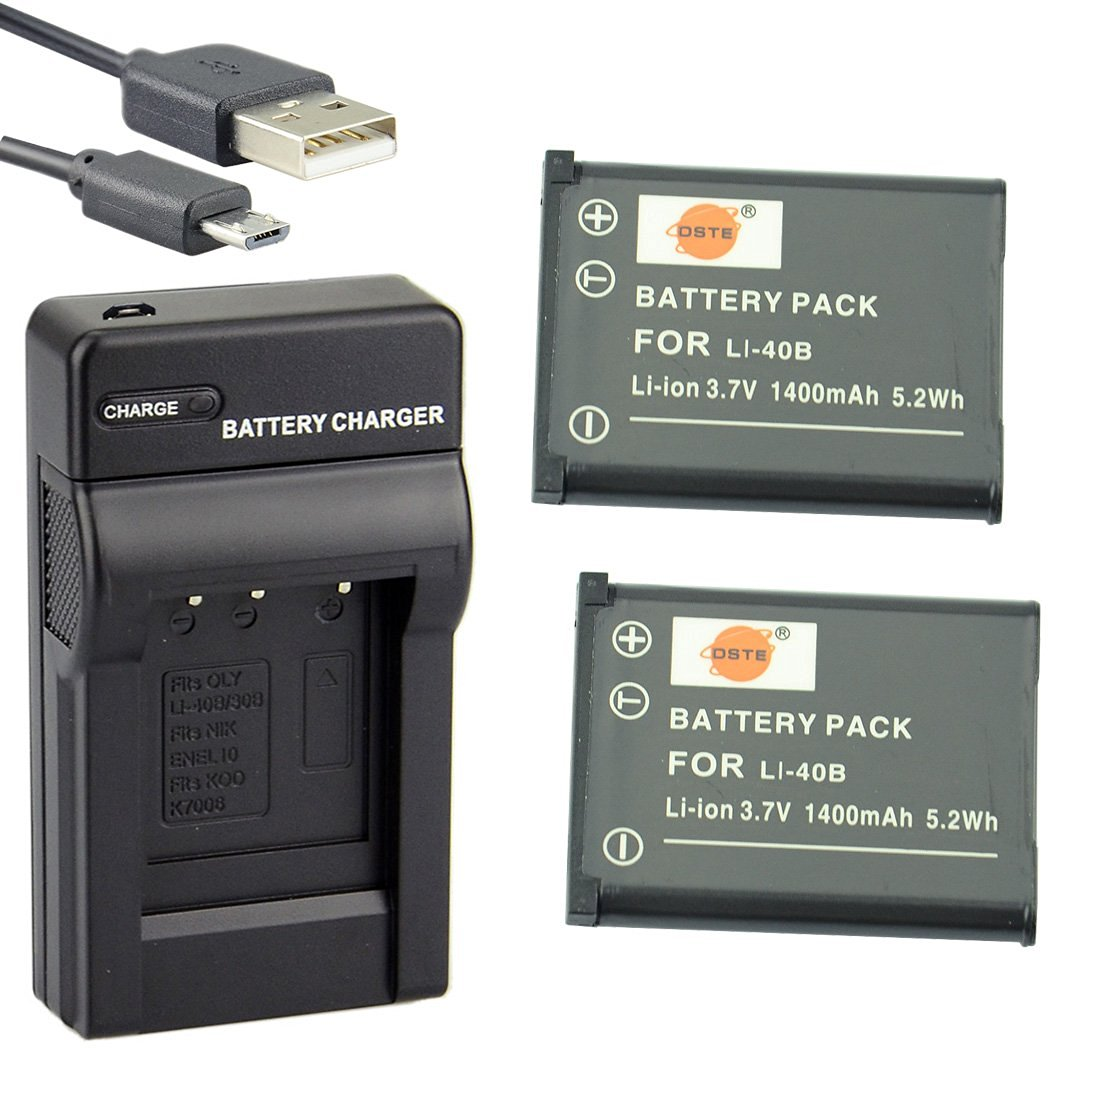 FE-160 FE-190 FE-230 CHARGER Micro-USB for OLYMPUS FE-150